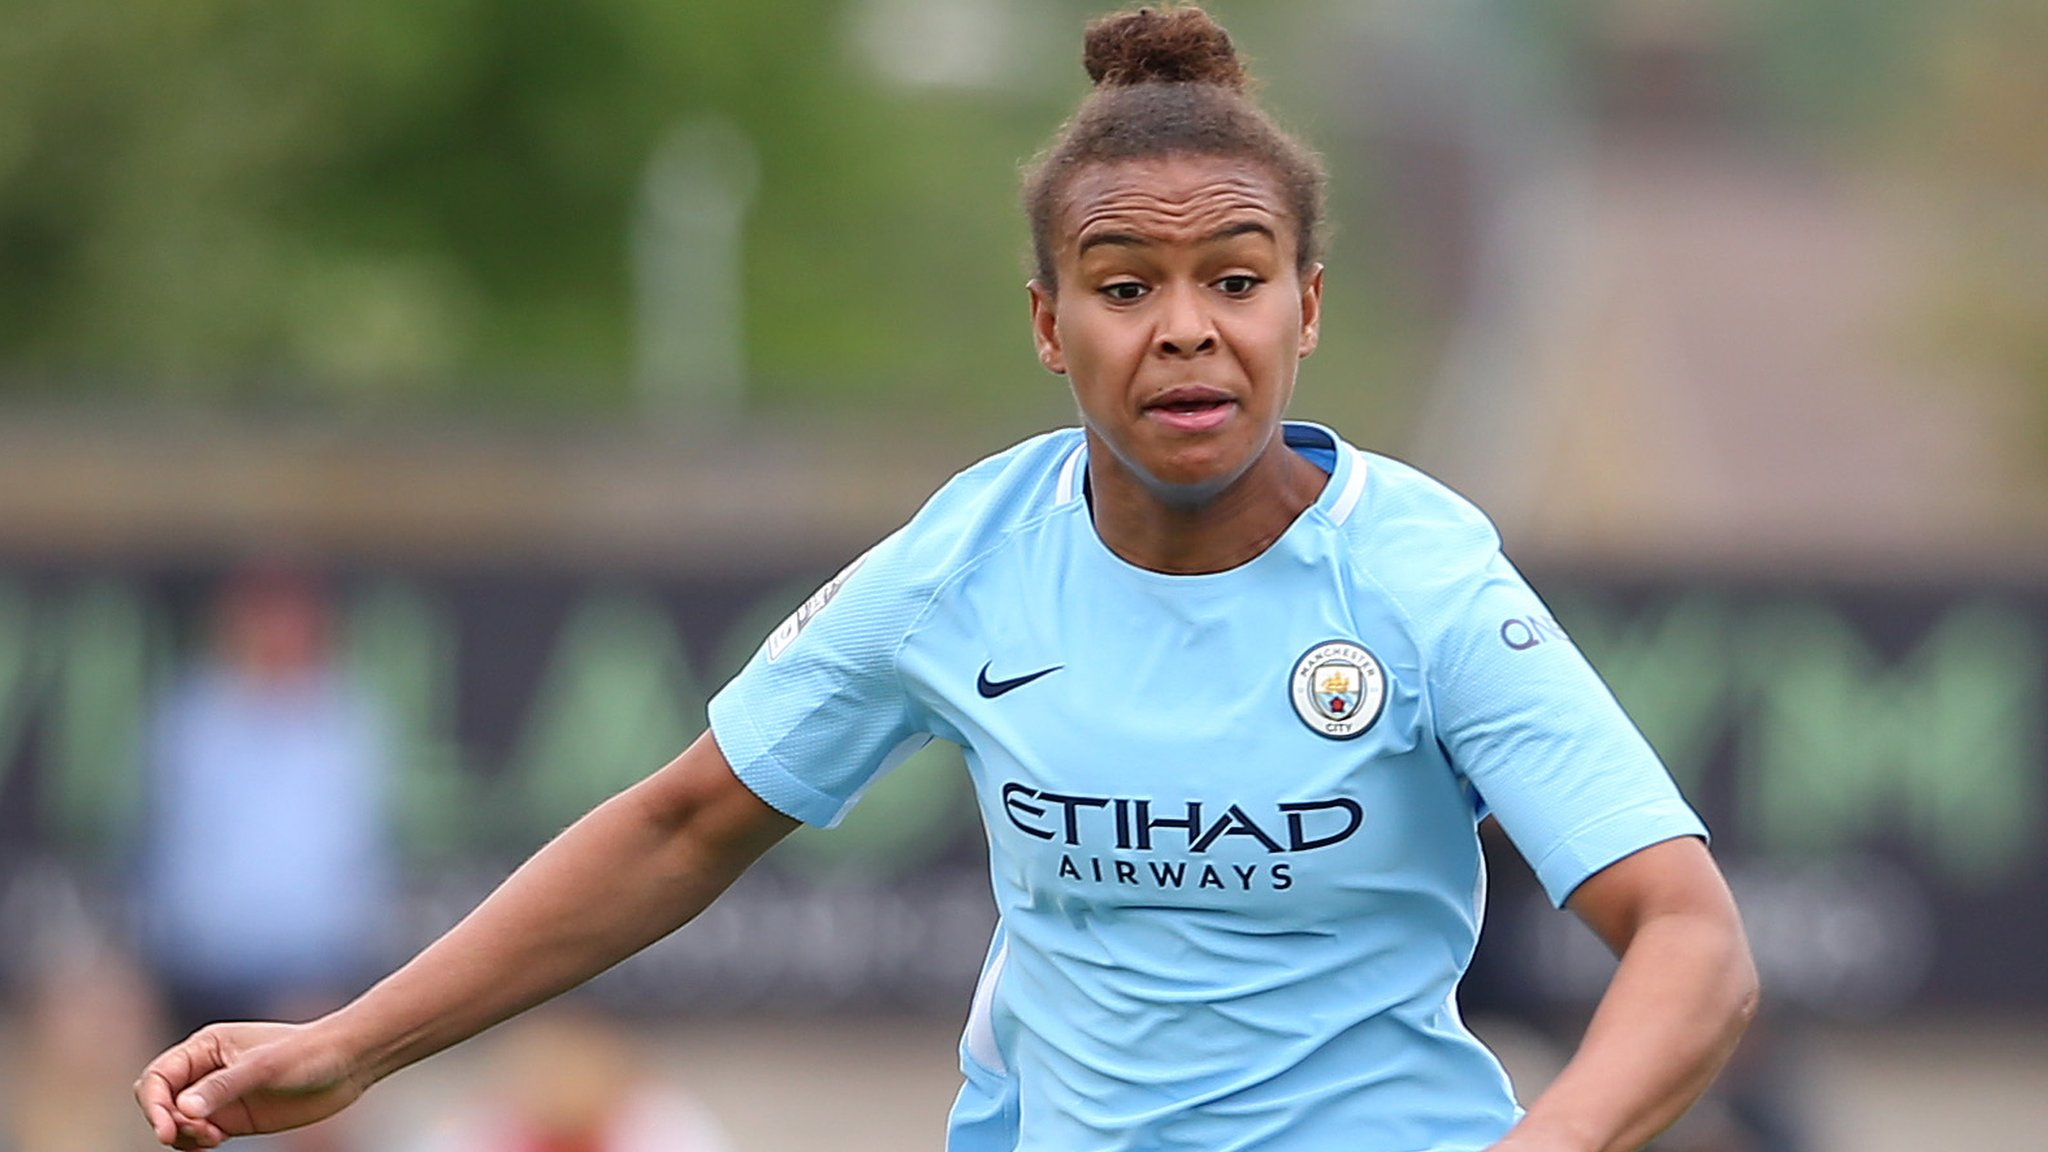 WSL highlights: Everton Ladies 0-4 Manchester City Women